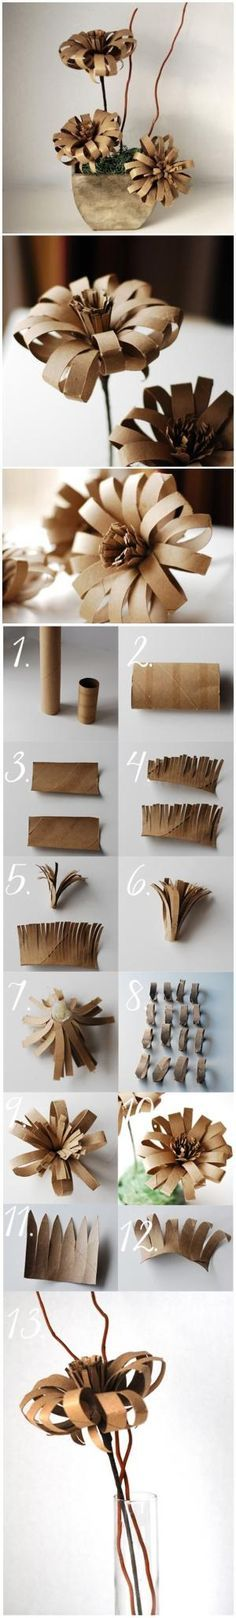 Diy Toilet Paper Roll Flowers by lucille.mickle